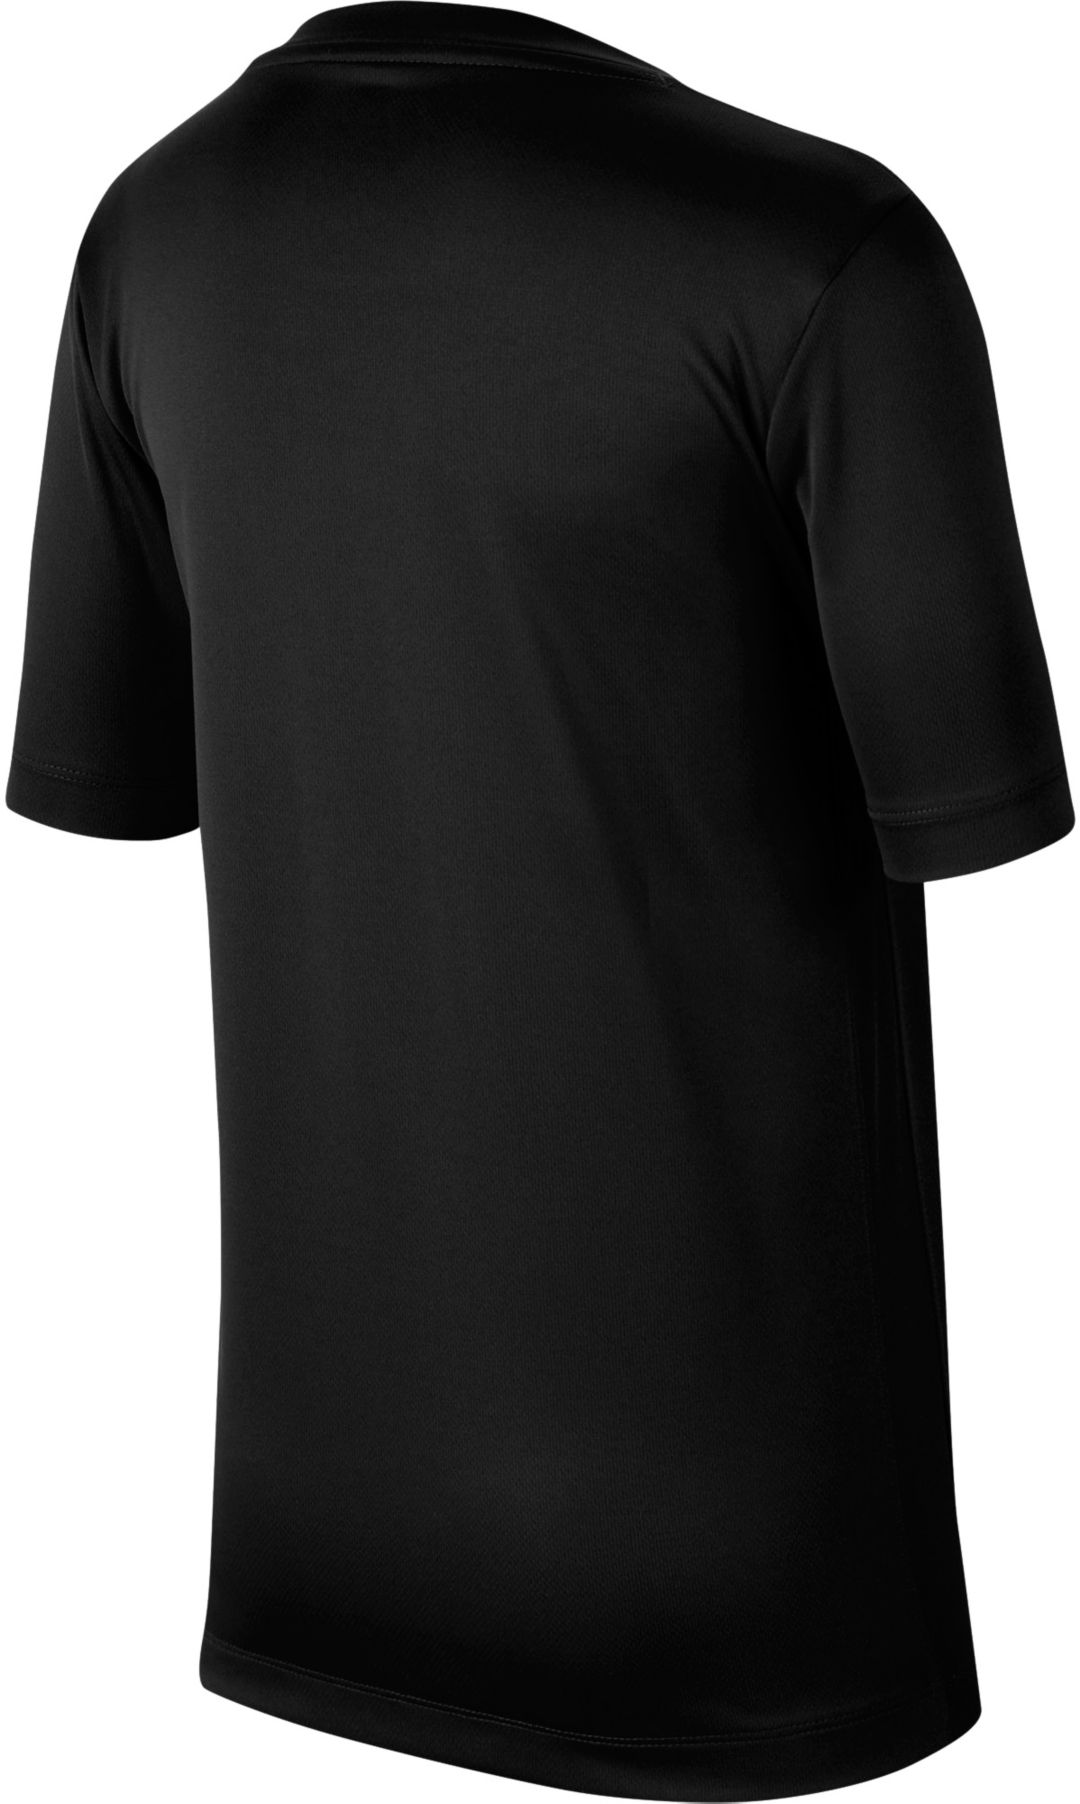 outlet look for buy sale Nike Boys' Trophy Graphic T-Shirt